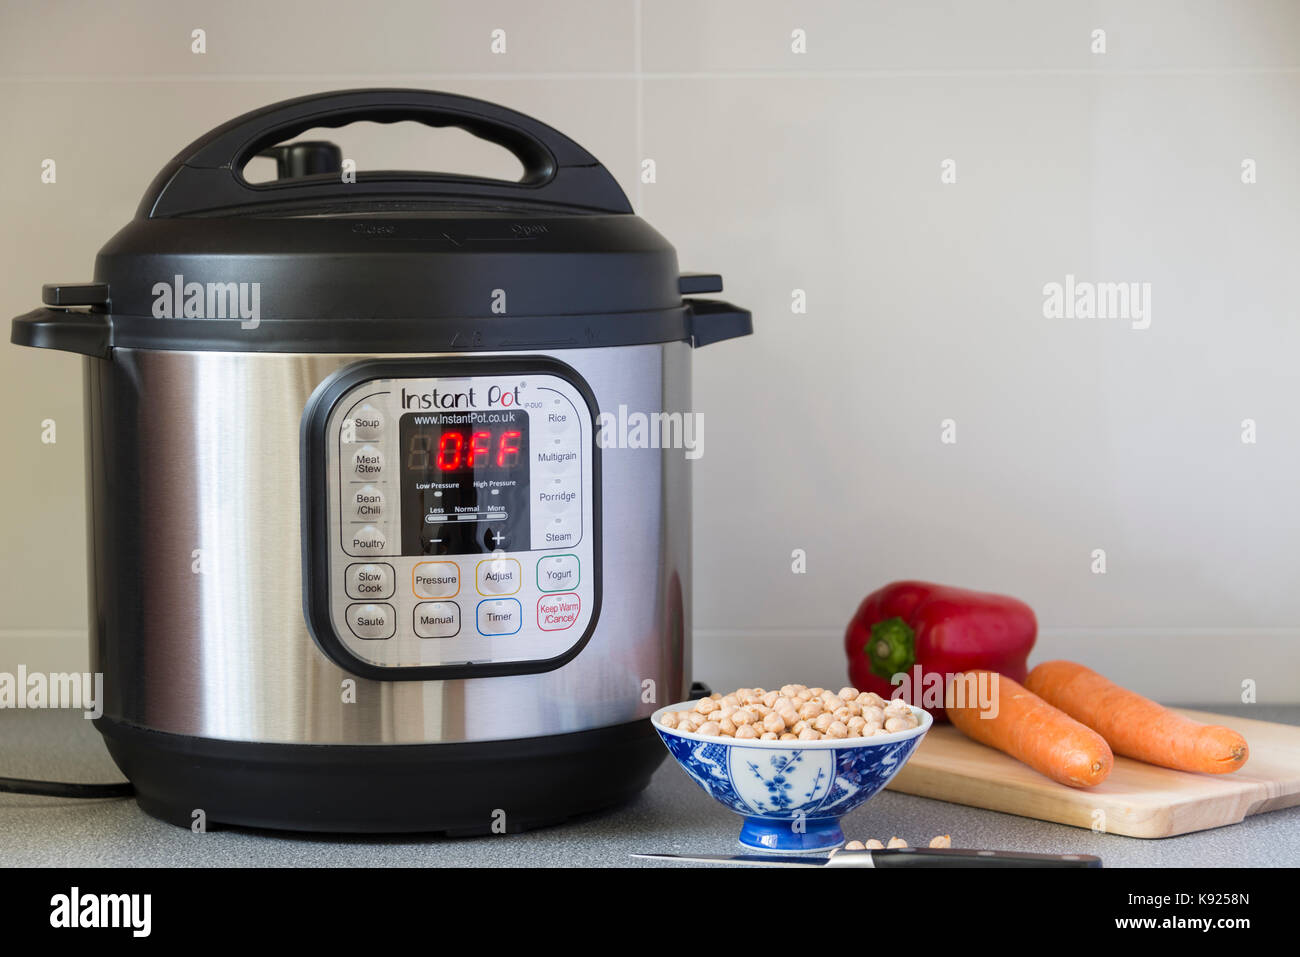 An Instant Pot Electric Pressure Cooker in use in a kitchen. - Stock Image